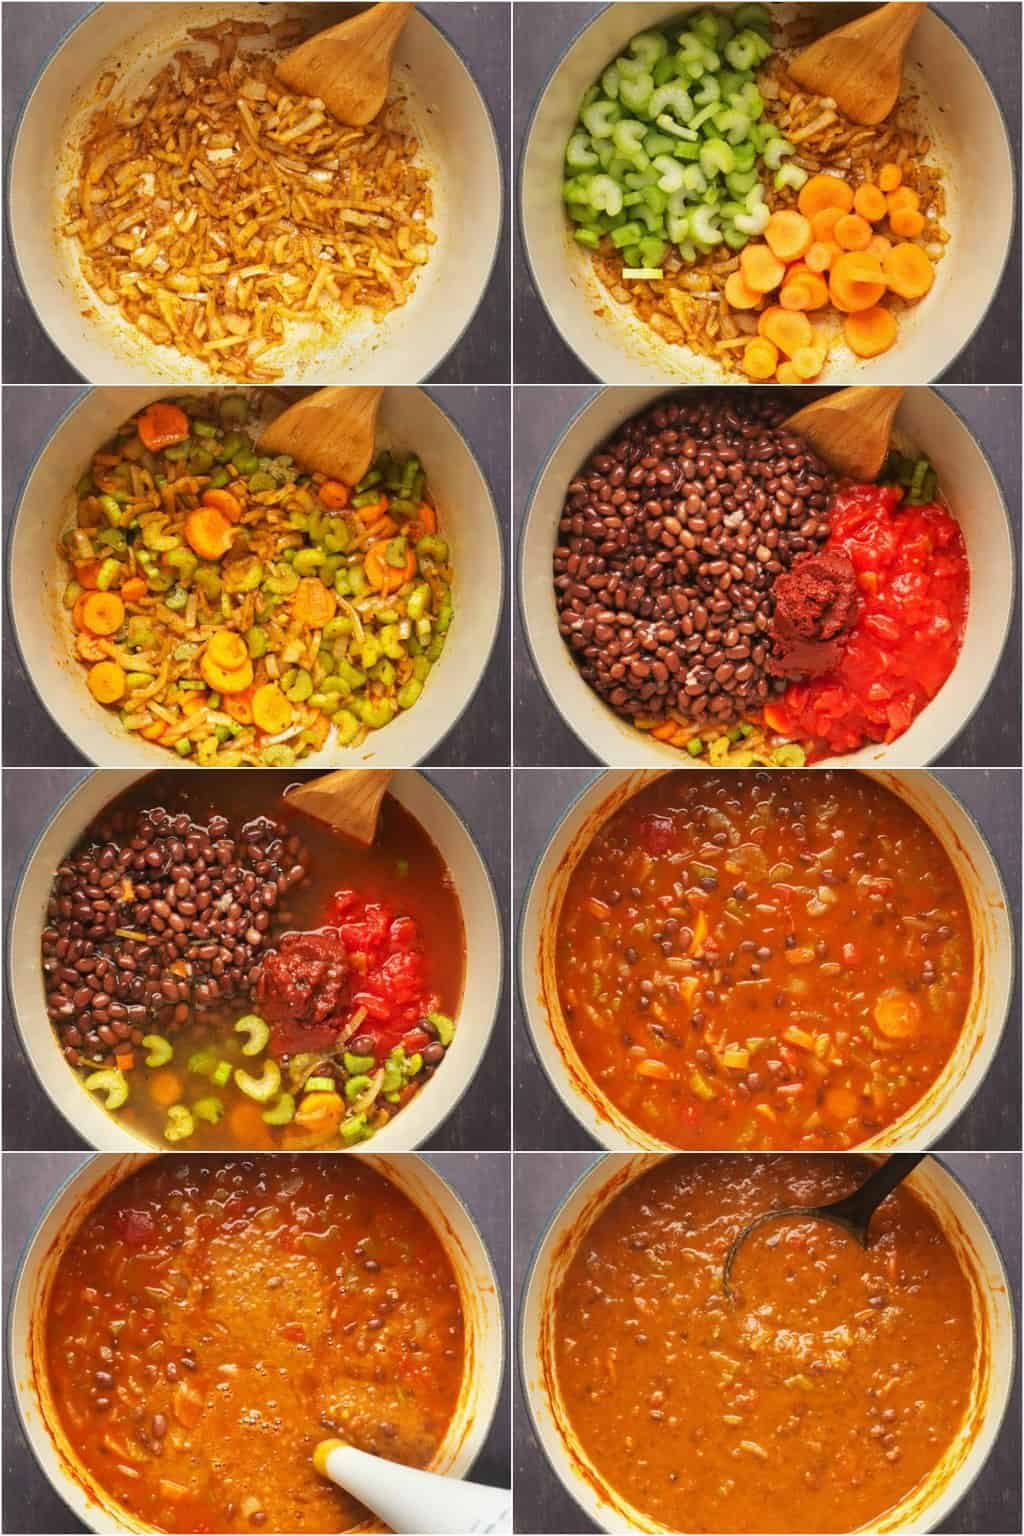 Step by step process photo collage of making vegan black bean soup.